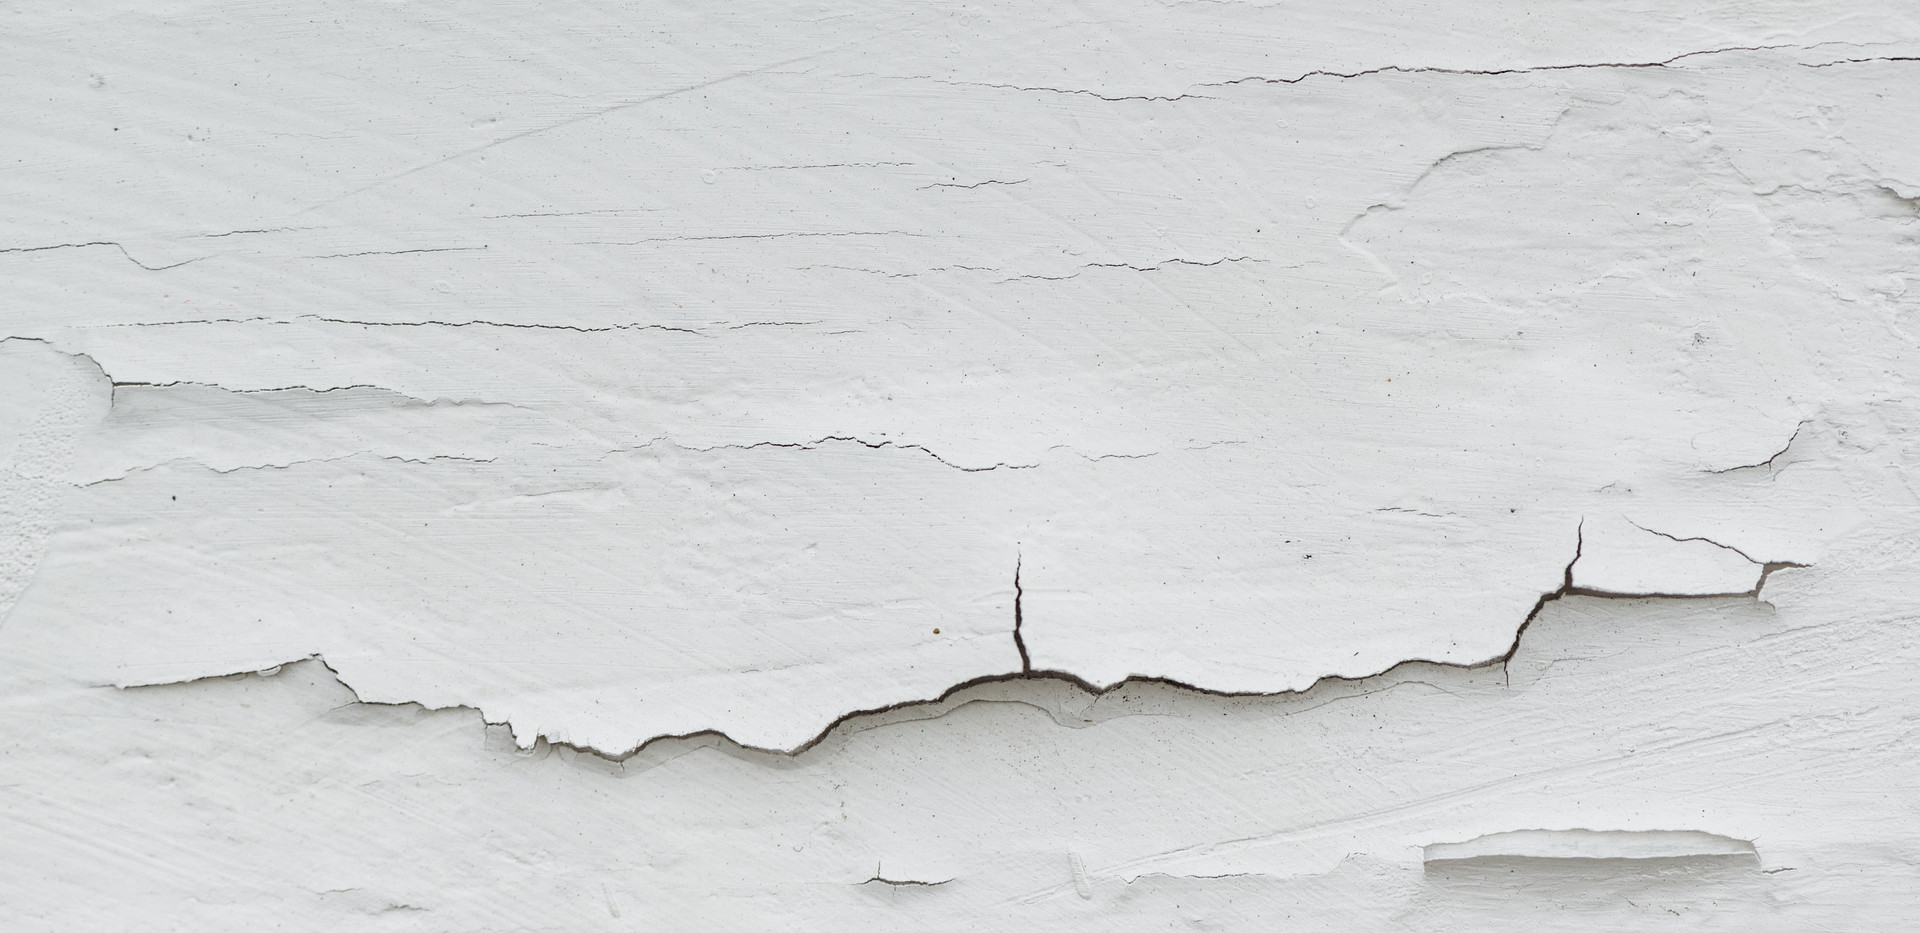 cracked-white-paint-on-plank-surface-PXW